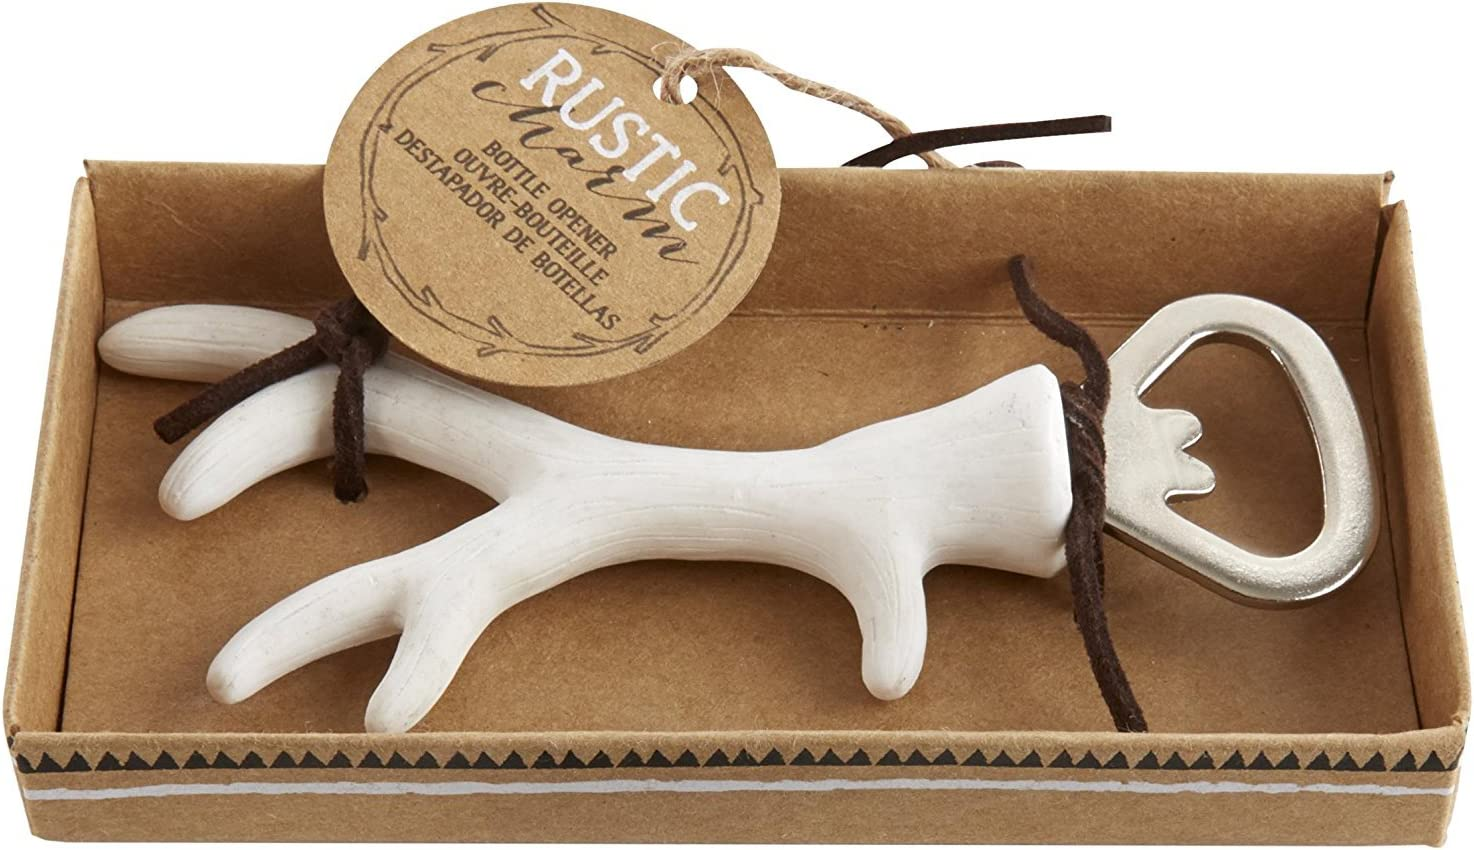 FavorOnline Rustic Charm Antler Surprise price Bottle Special price for a limited time 24 Opener